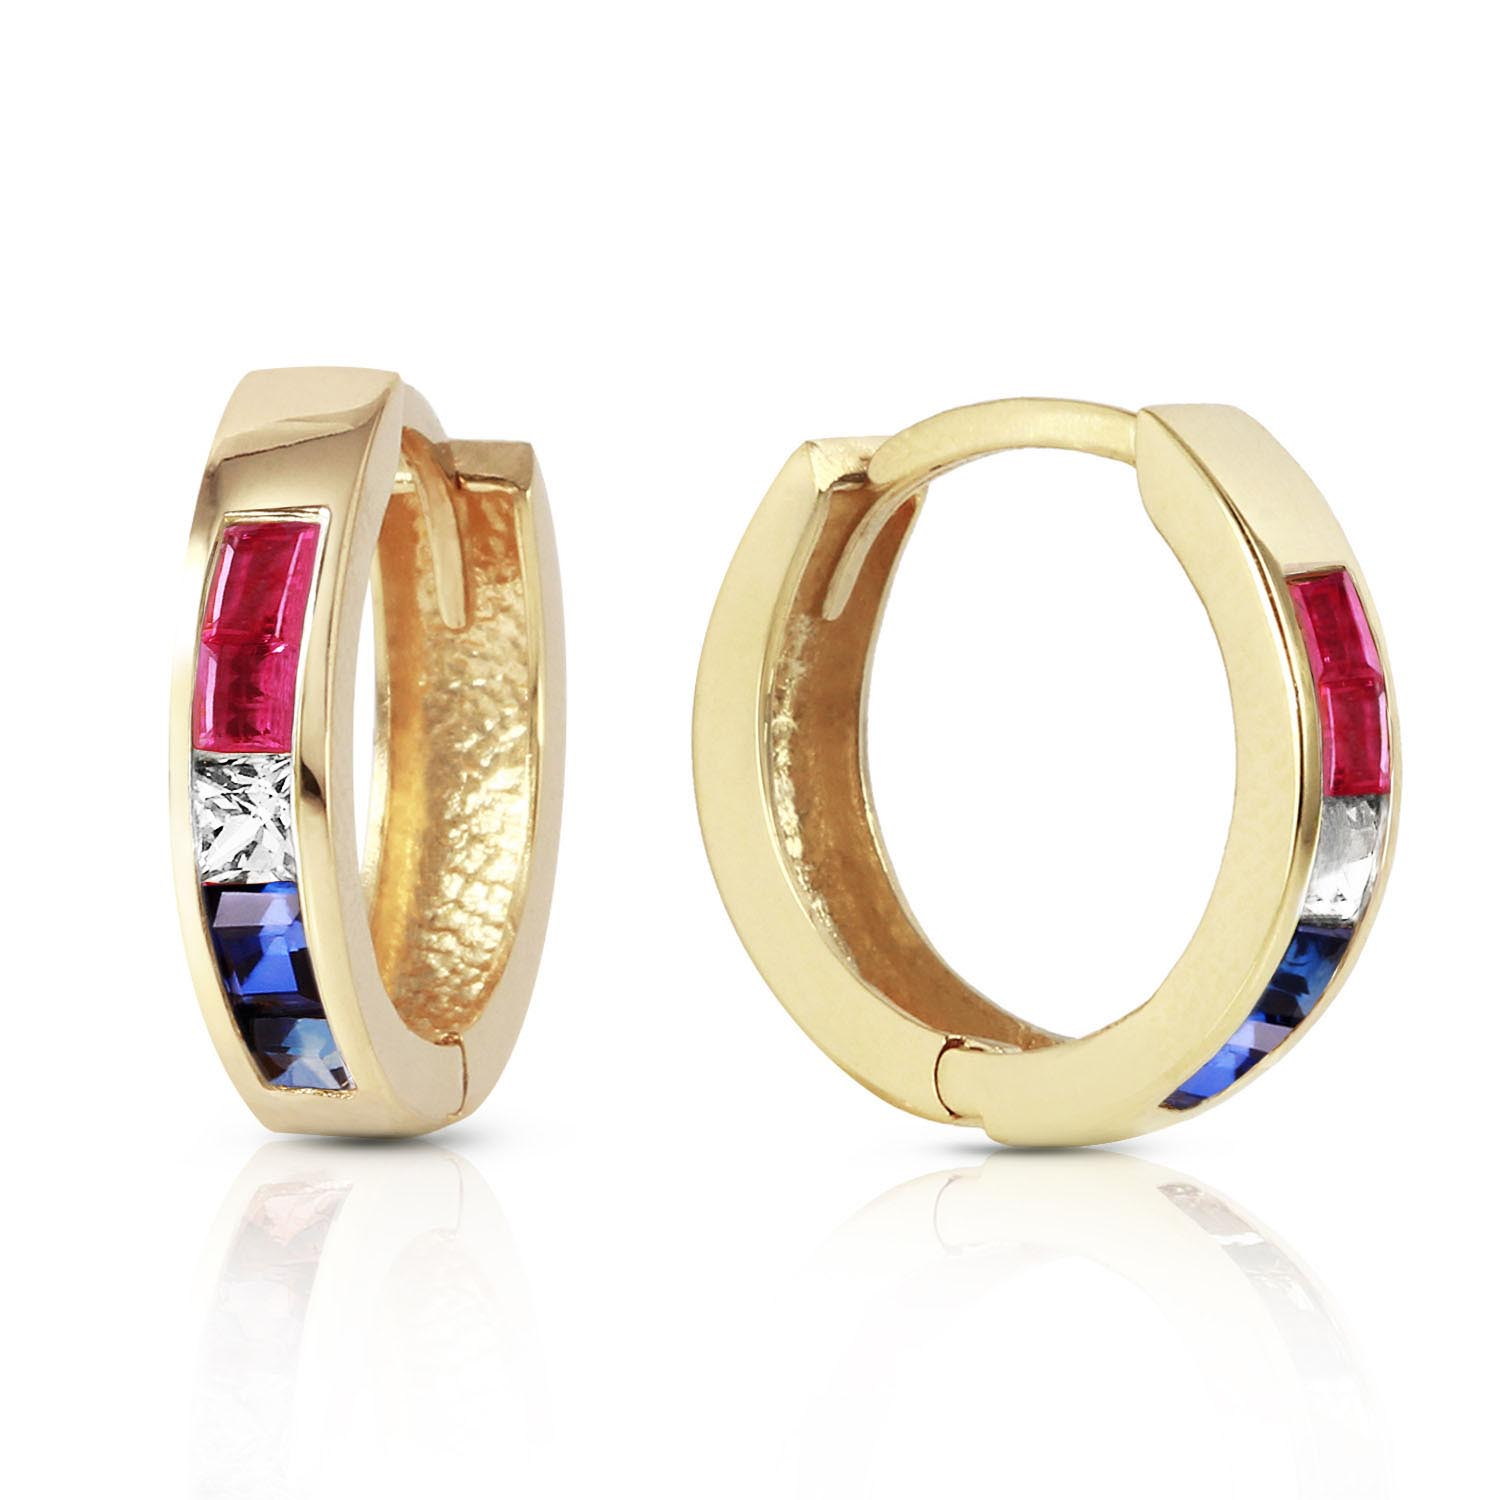 Gemstone Huggie Earrings 1.28ctw in 9ct Gold